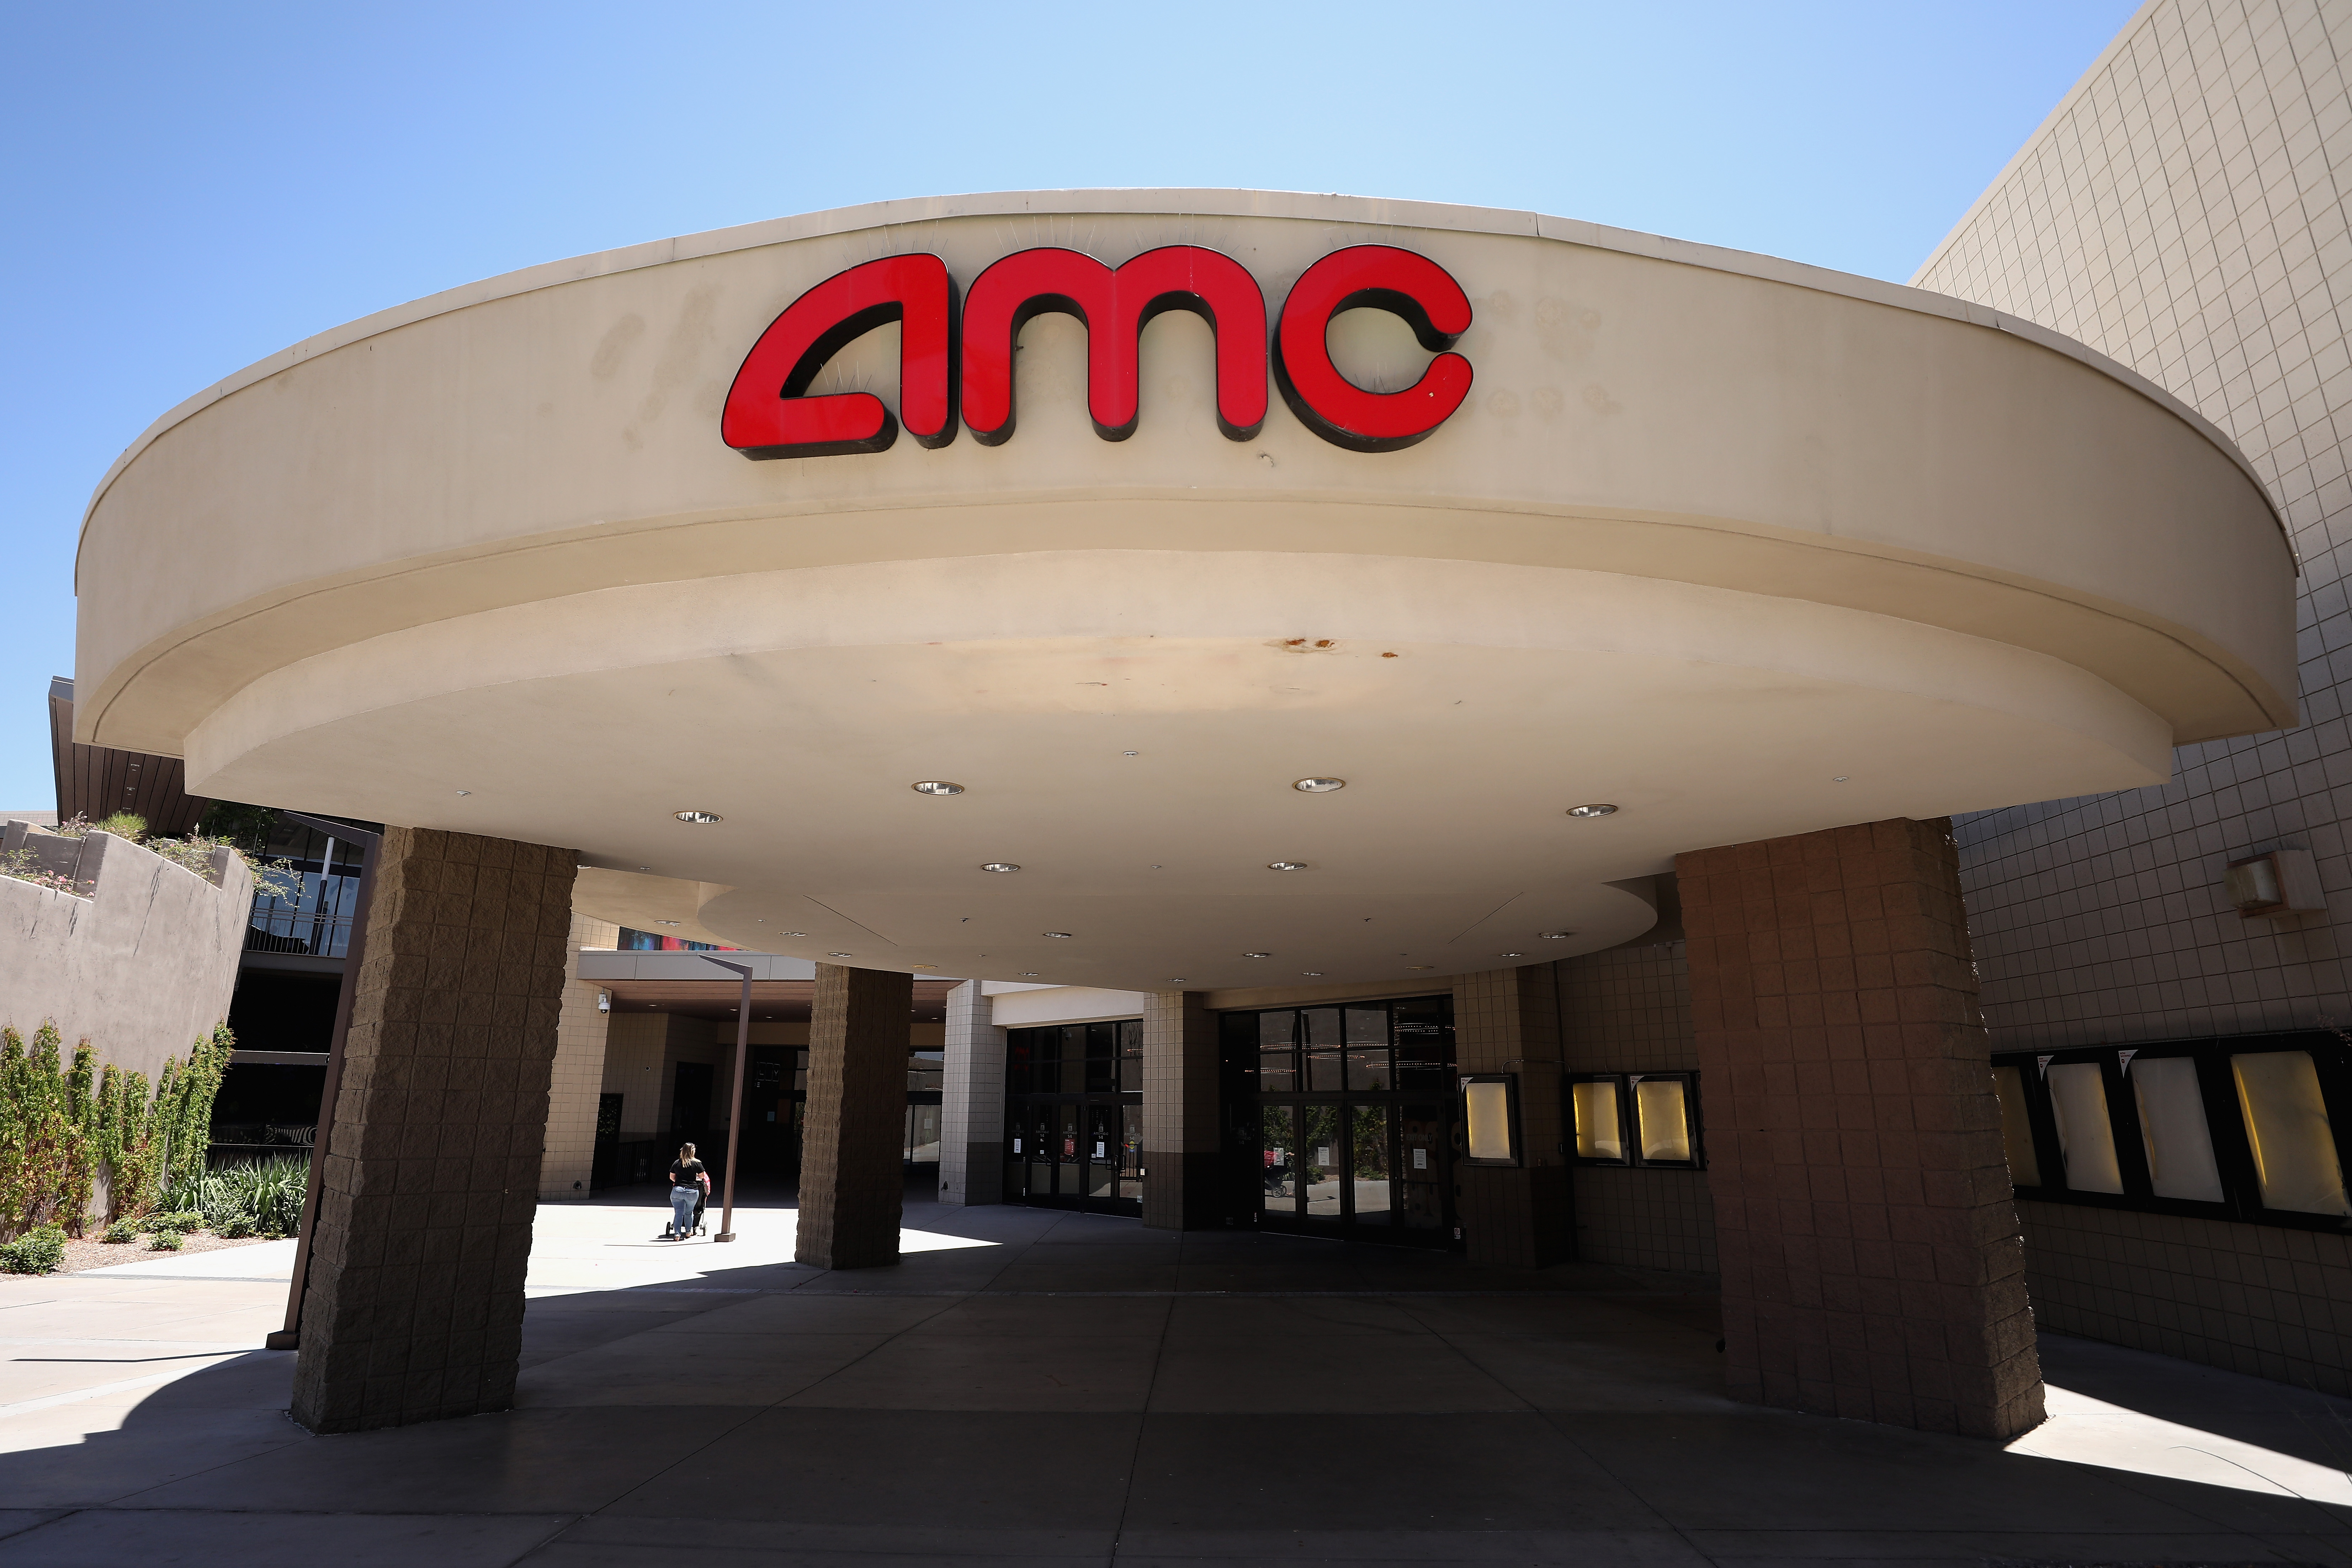 Amc Theaters Reopening This Month With 15 Cent Movies Across The Country Nj Com